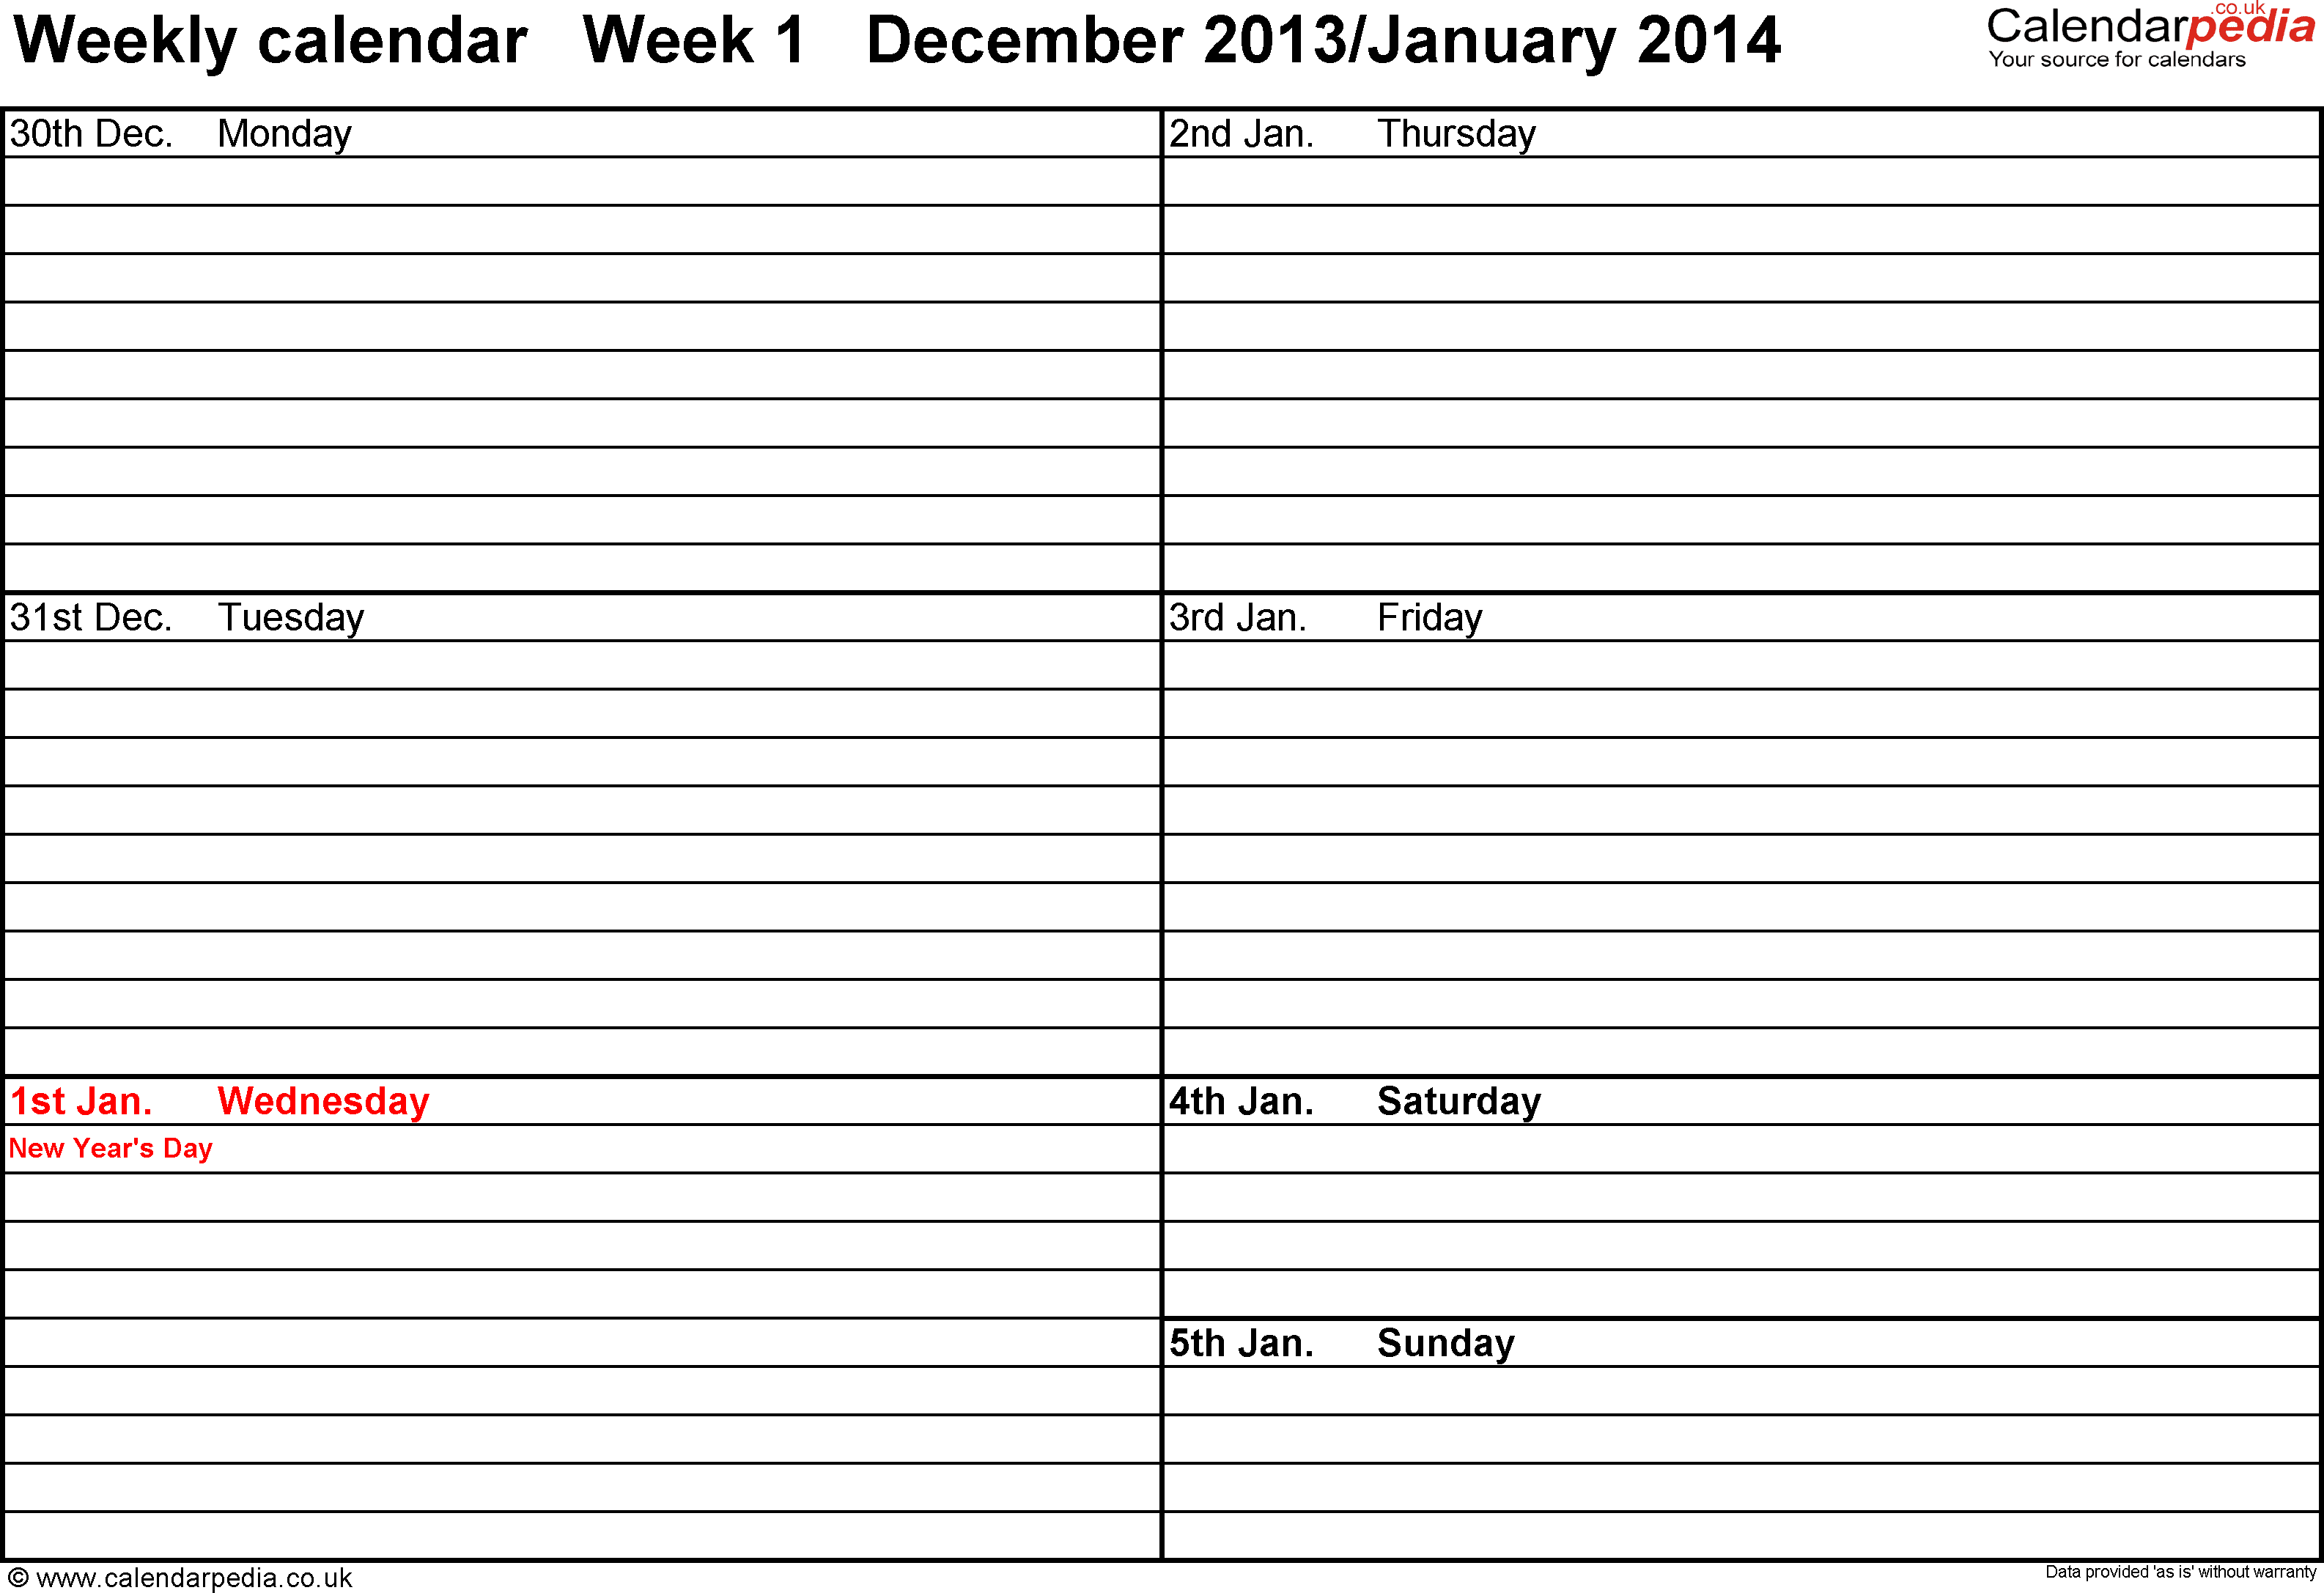 3 day calendar template weekly calendar 2014 uk free printable templates for word